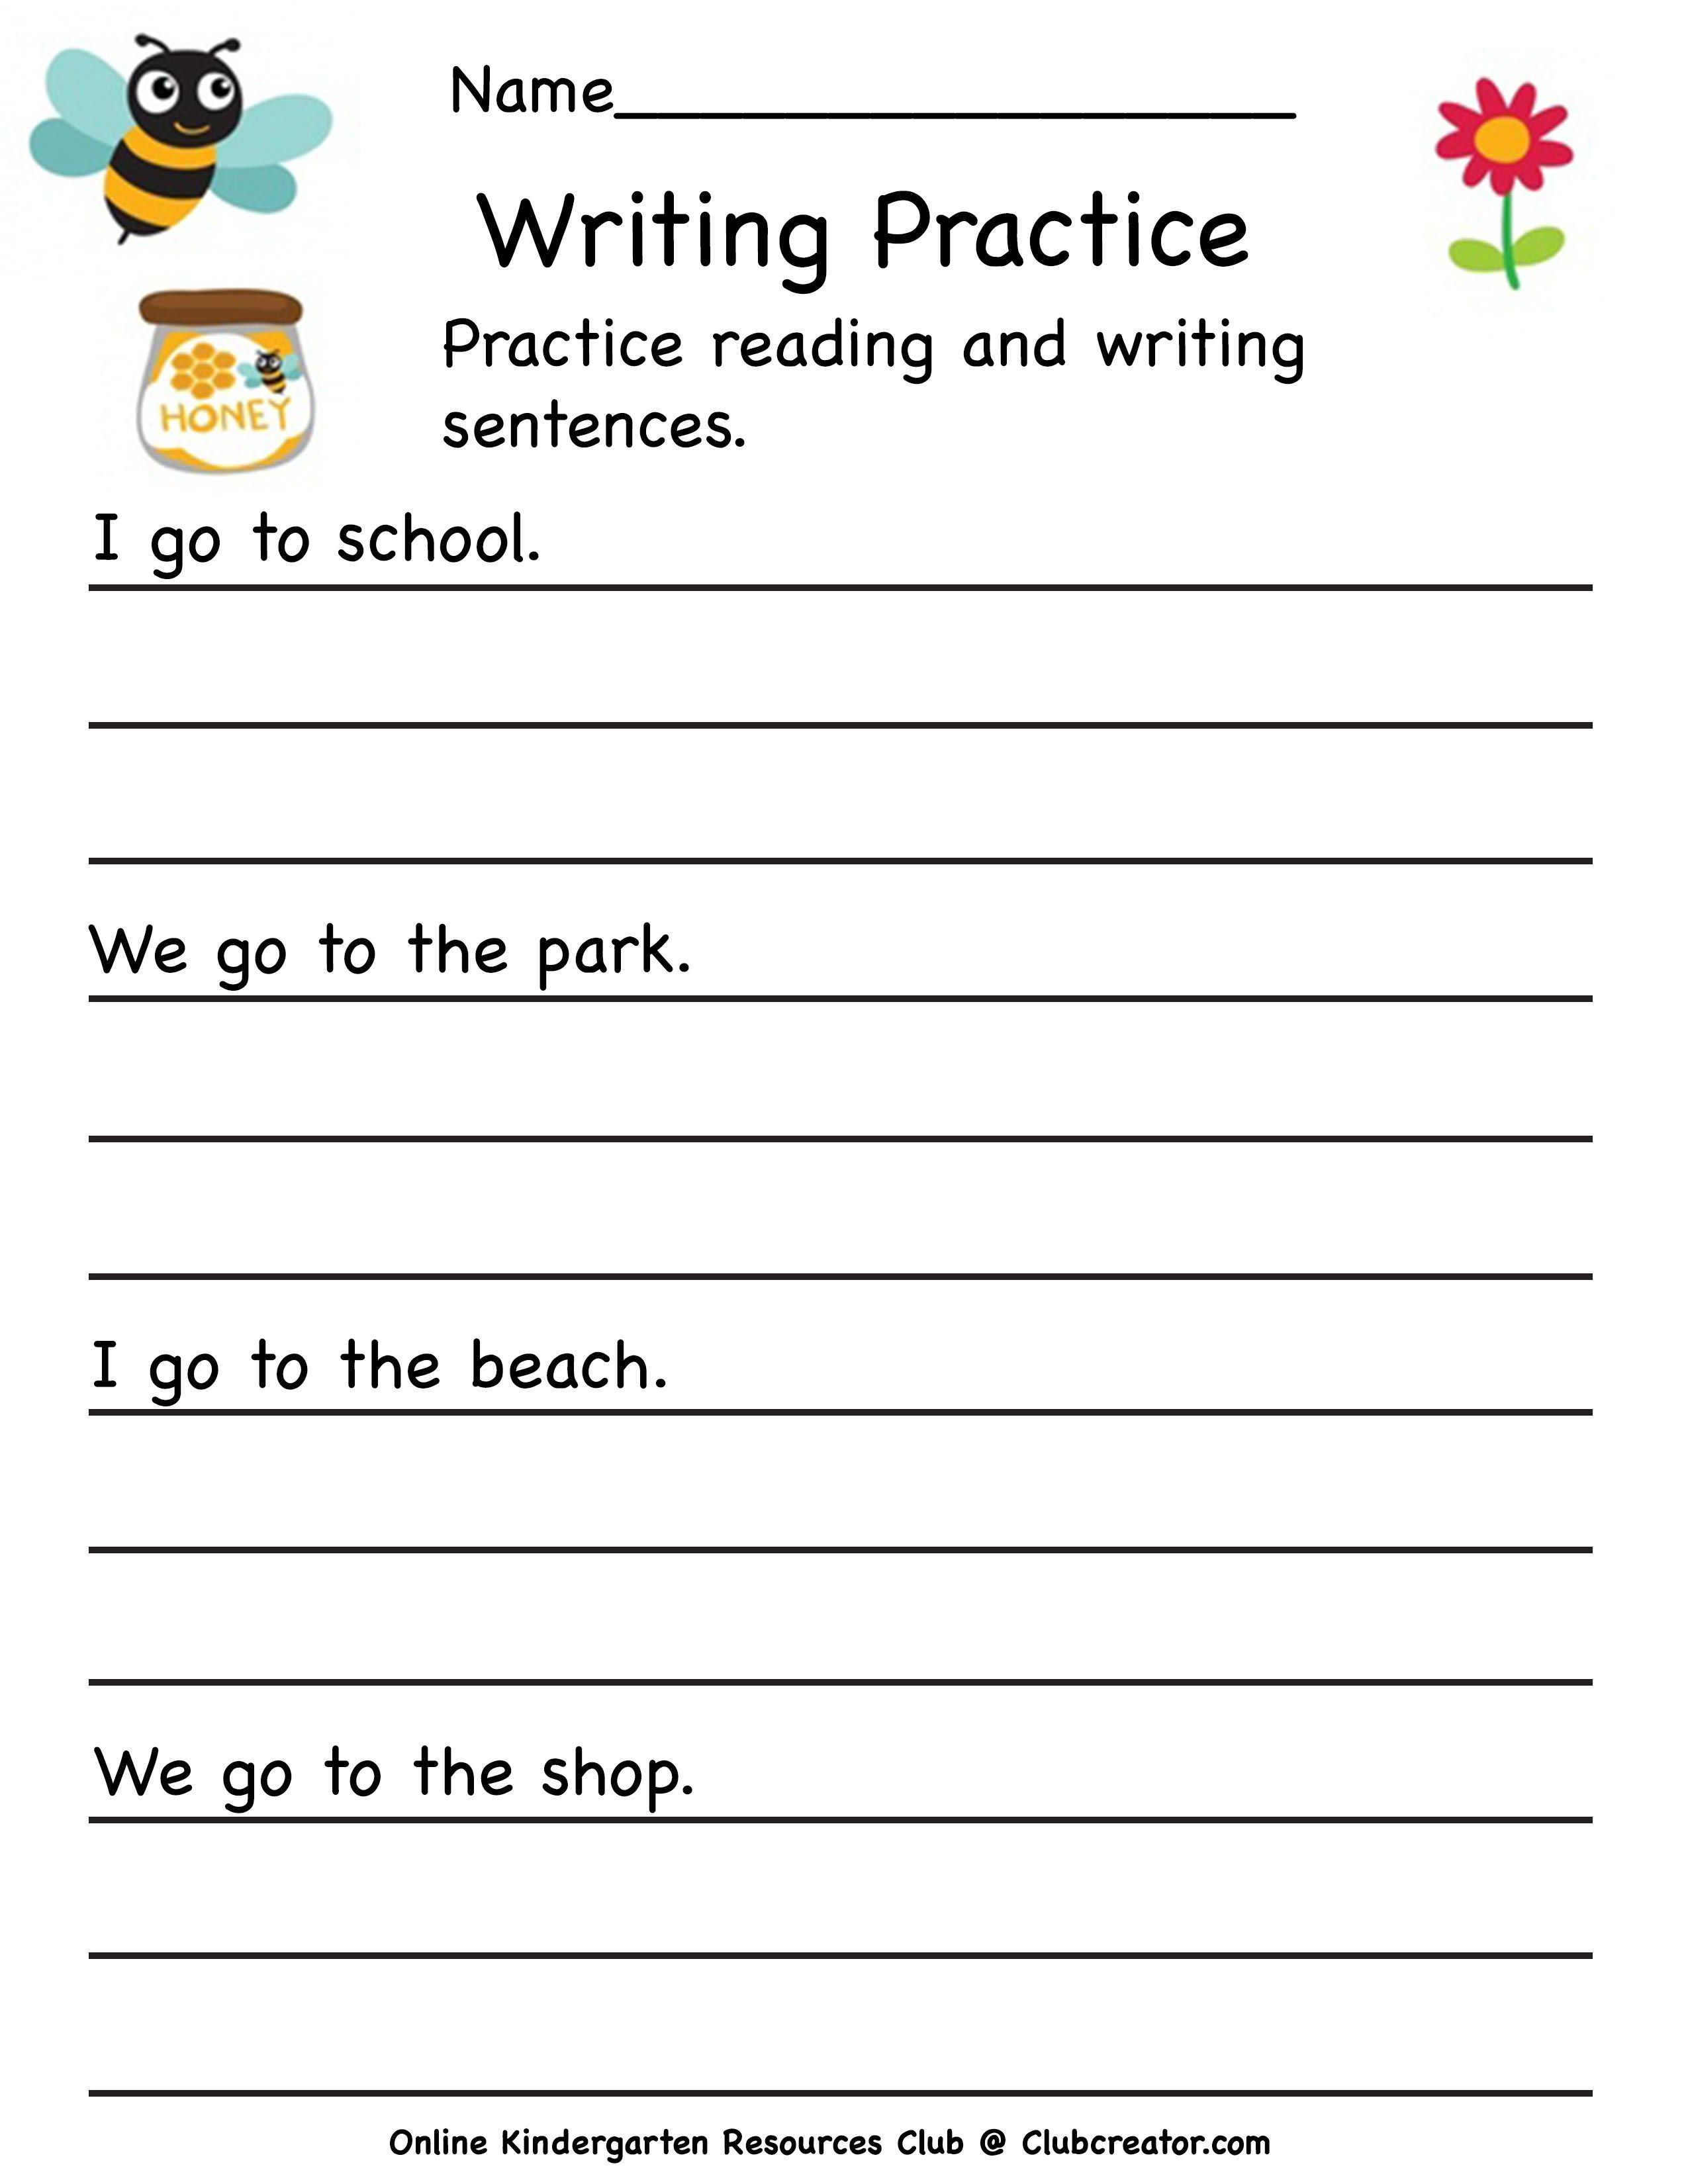 Early Writing Practice Worksheet In